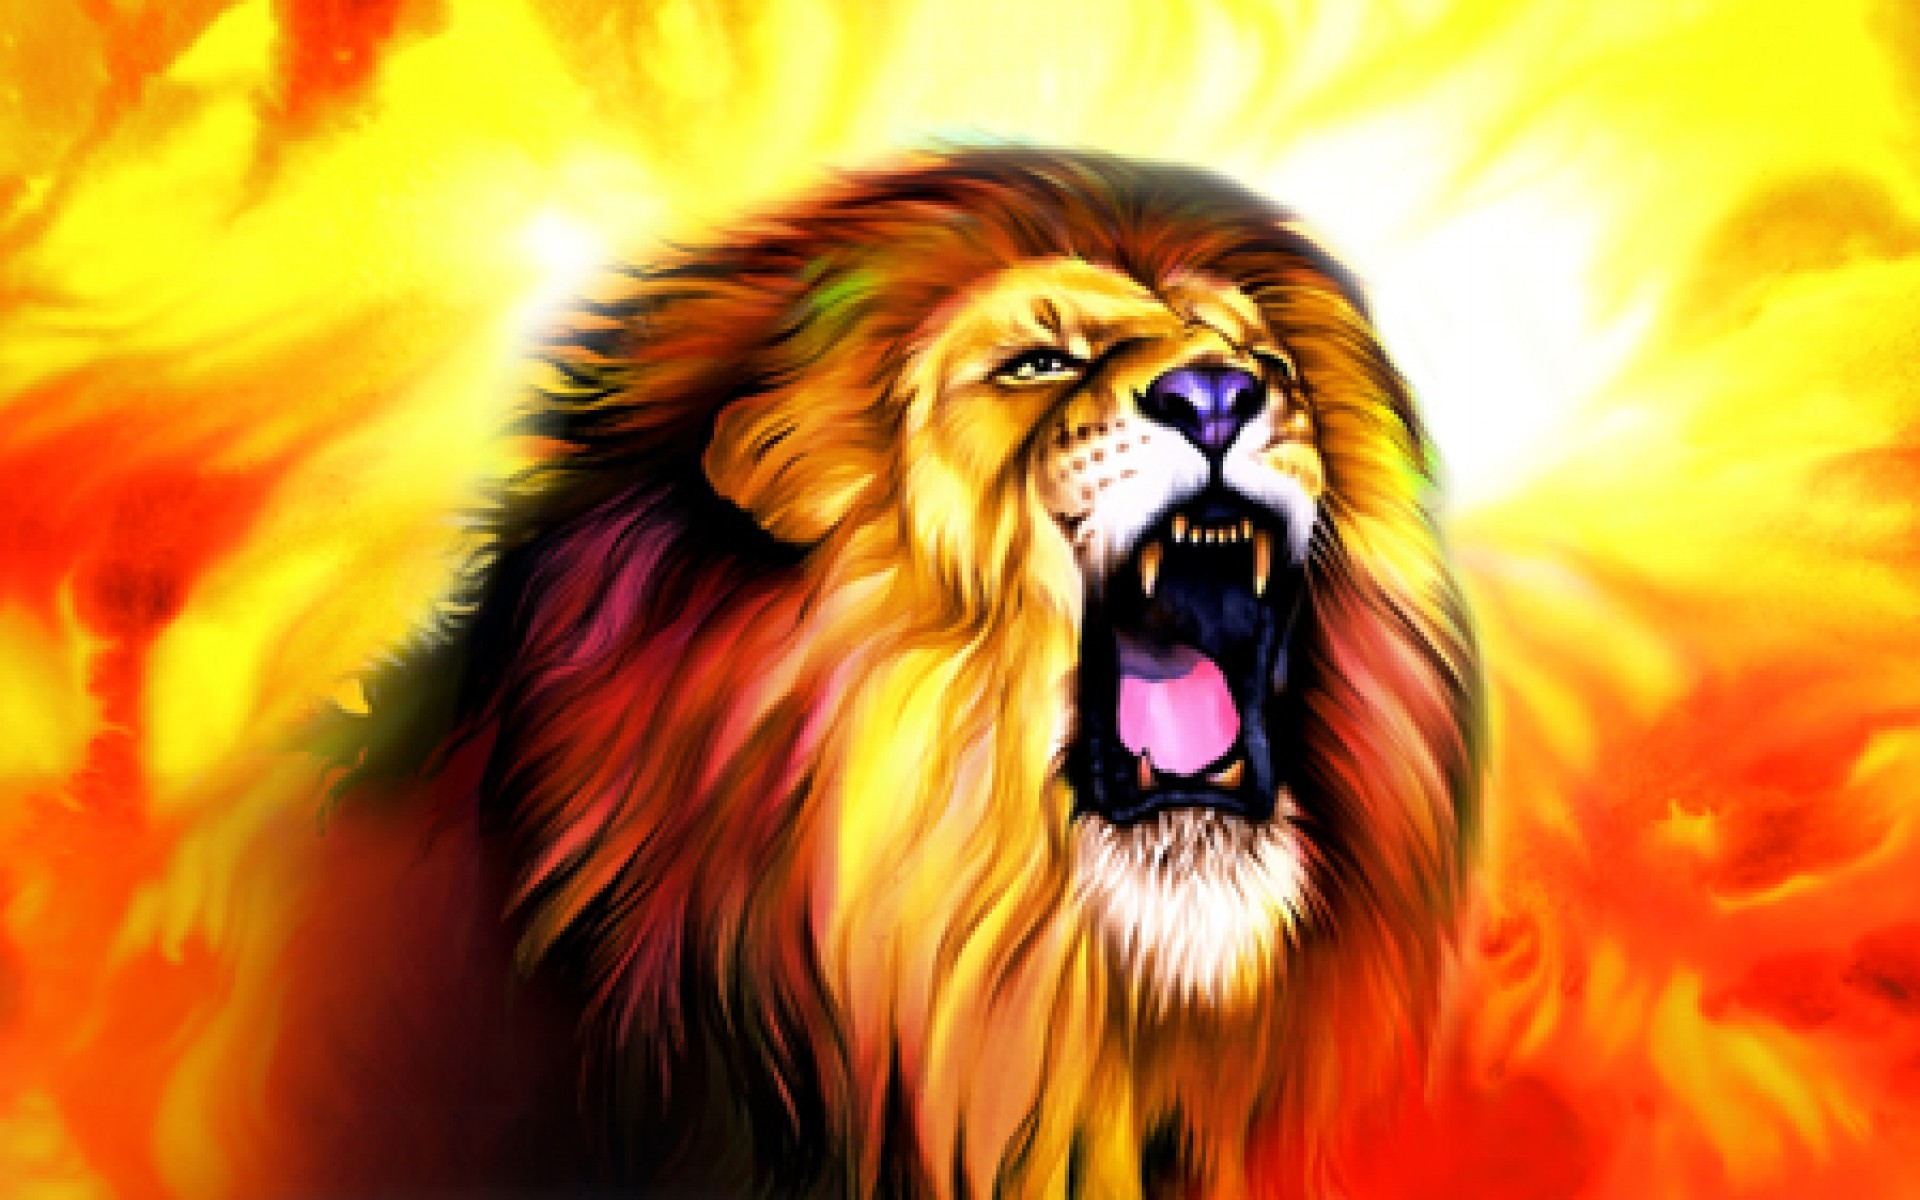 Lion Wallpaper HD ·① Download Free Amazing HD Wallpapers